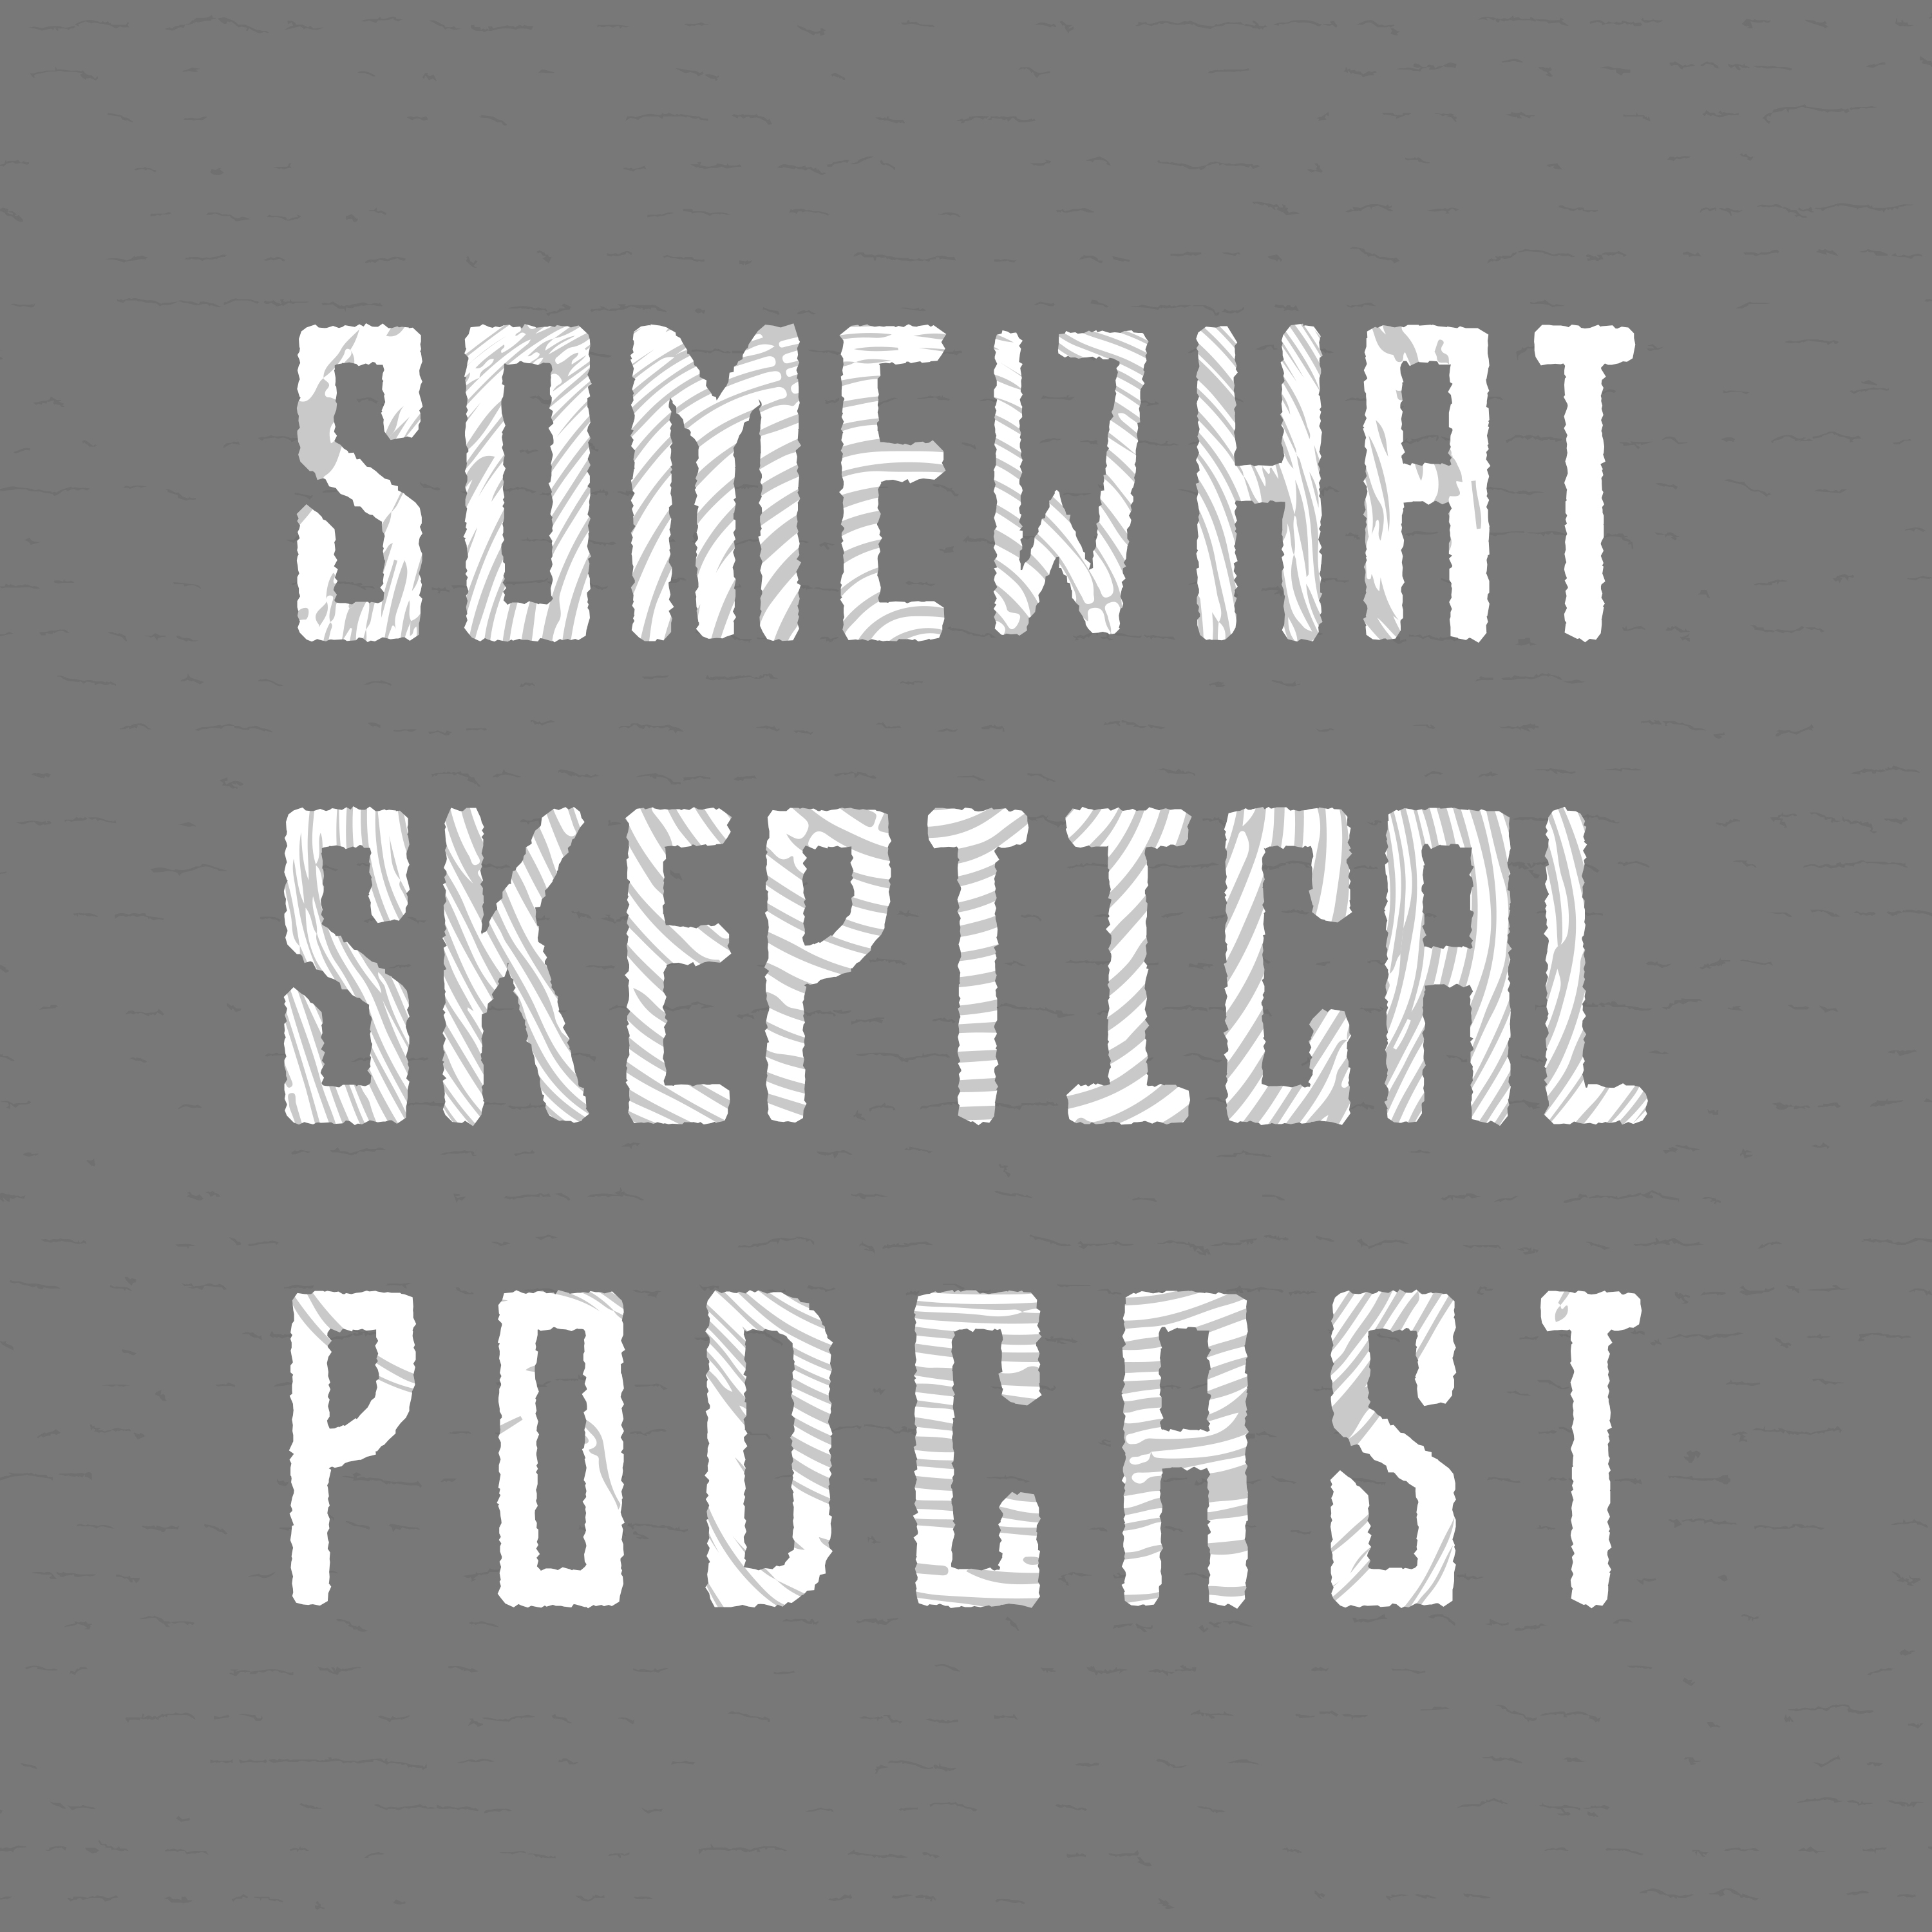 Somewhat Skeptical Podcast